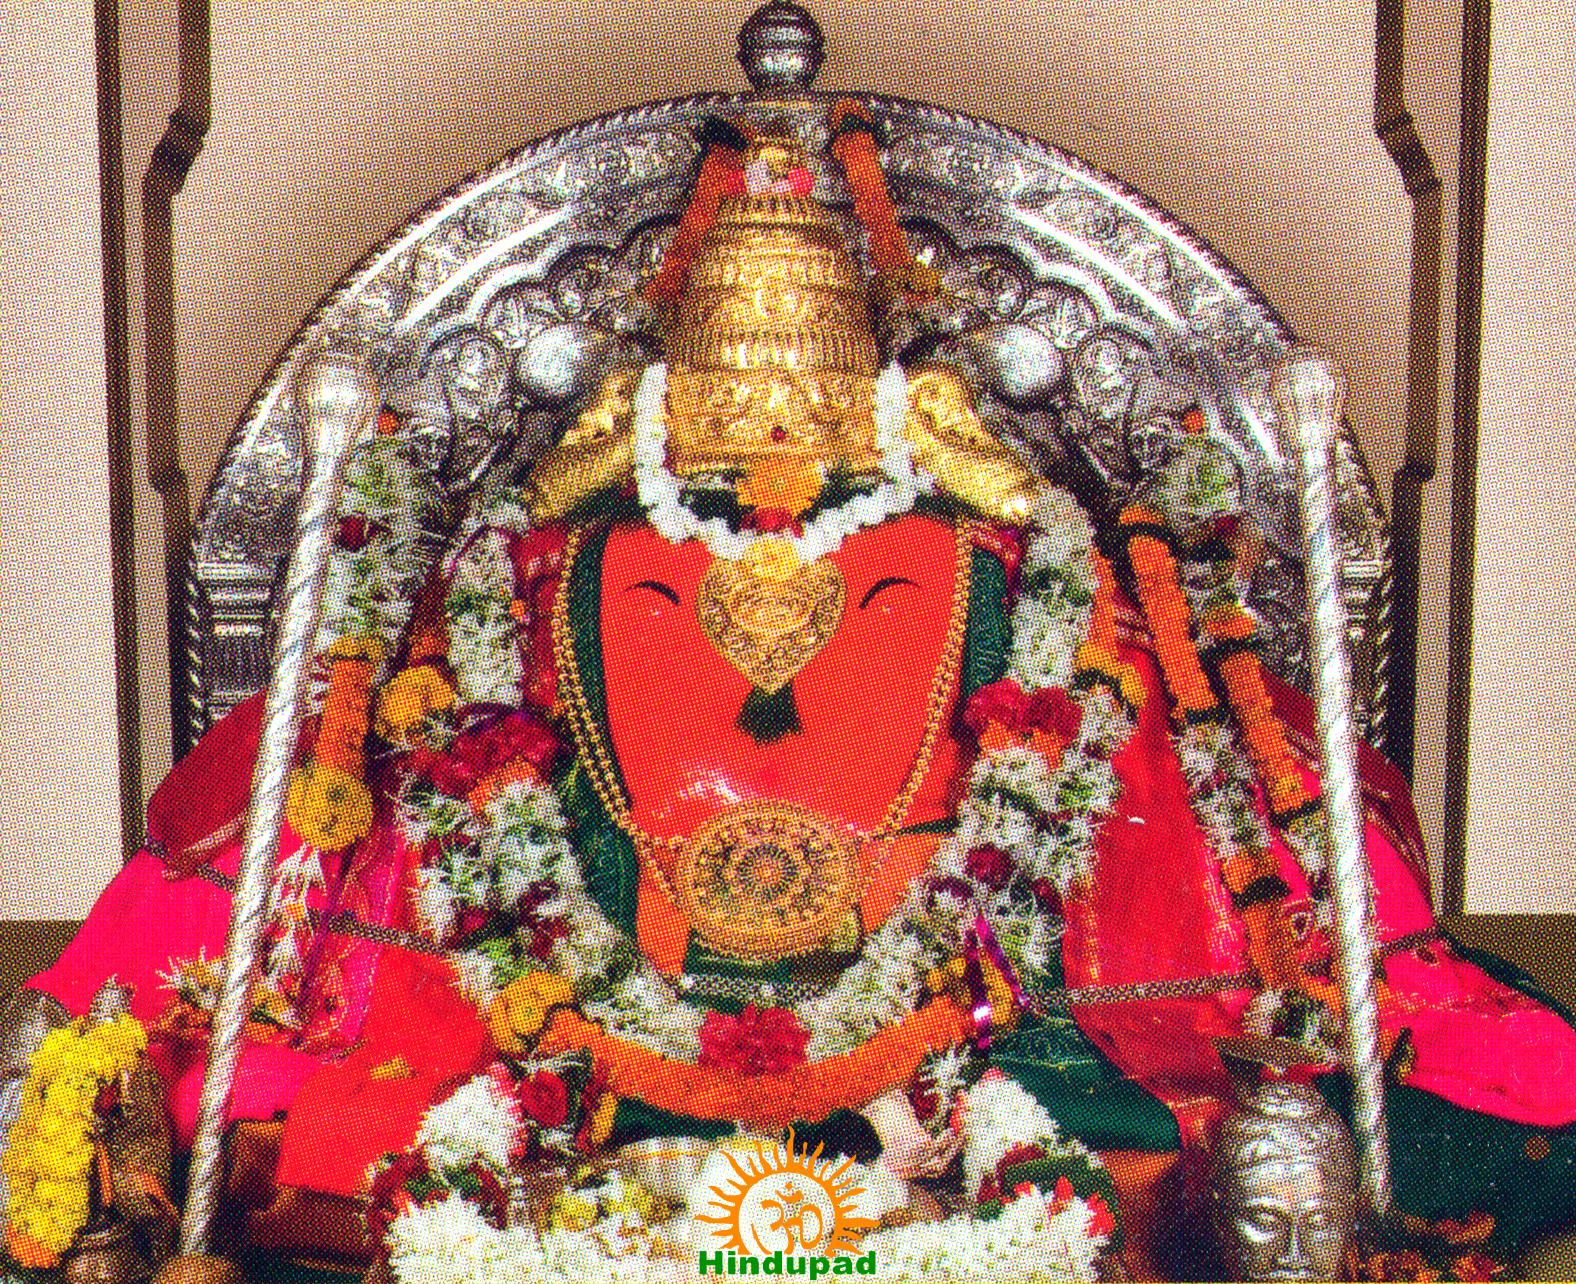 Ganesh Utsav Ballaleshwar Pali Ashtavinayak Eight Ganesha Temples Mumbai Image for free download